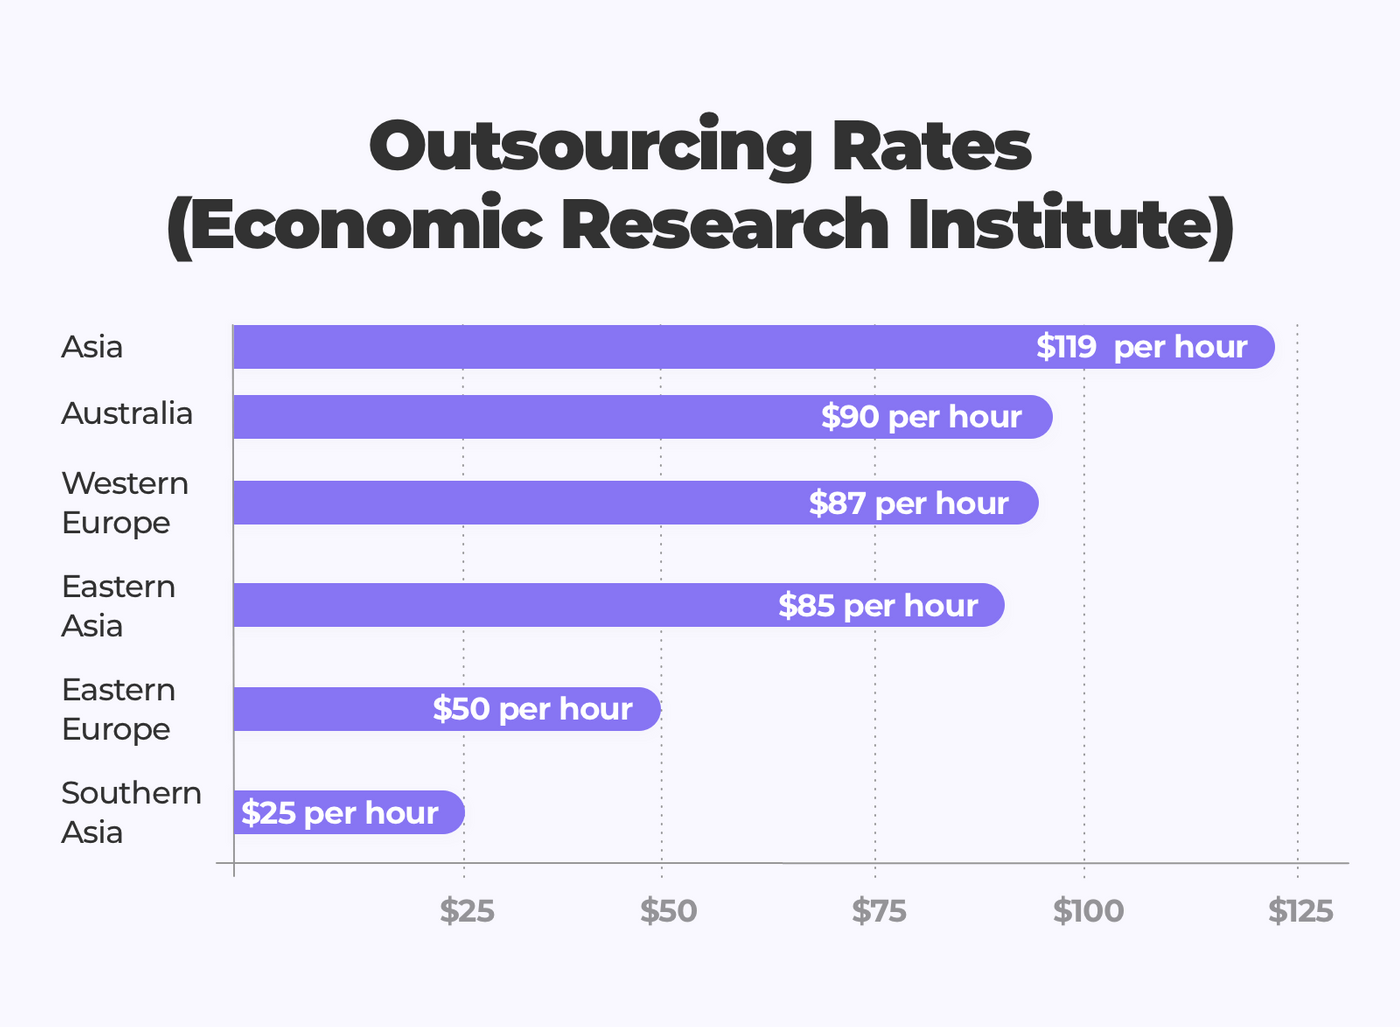 Outsourcing rates